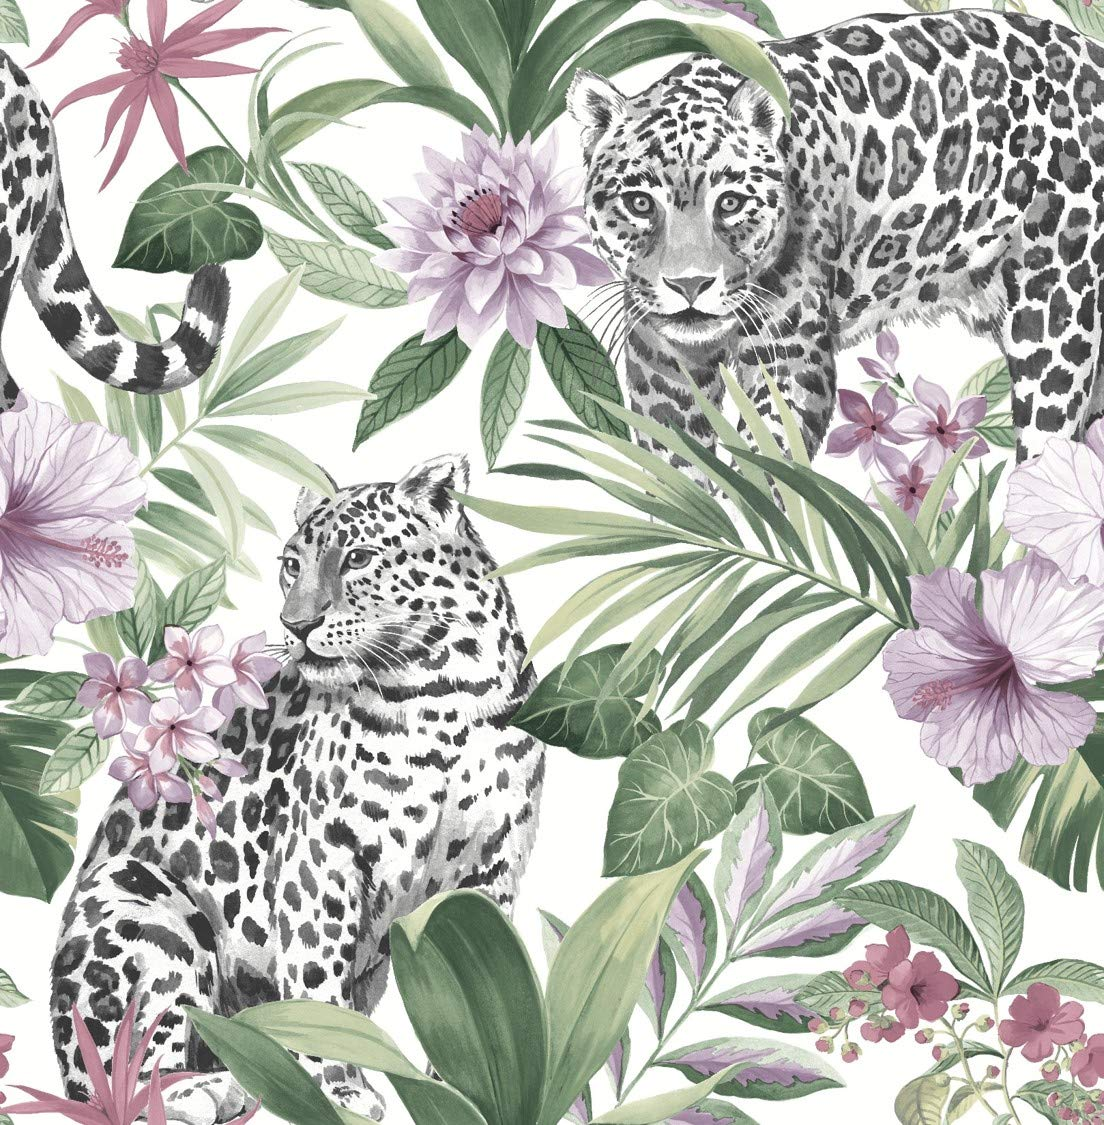 Fine Décor FD42470 UK Tropica Leopard Pastel Wallpaper, Multi-Colour